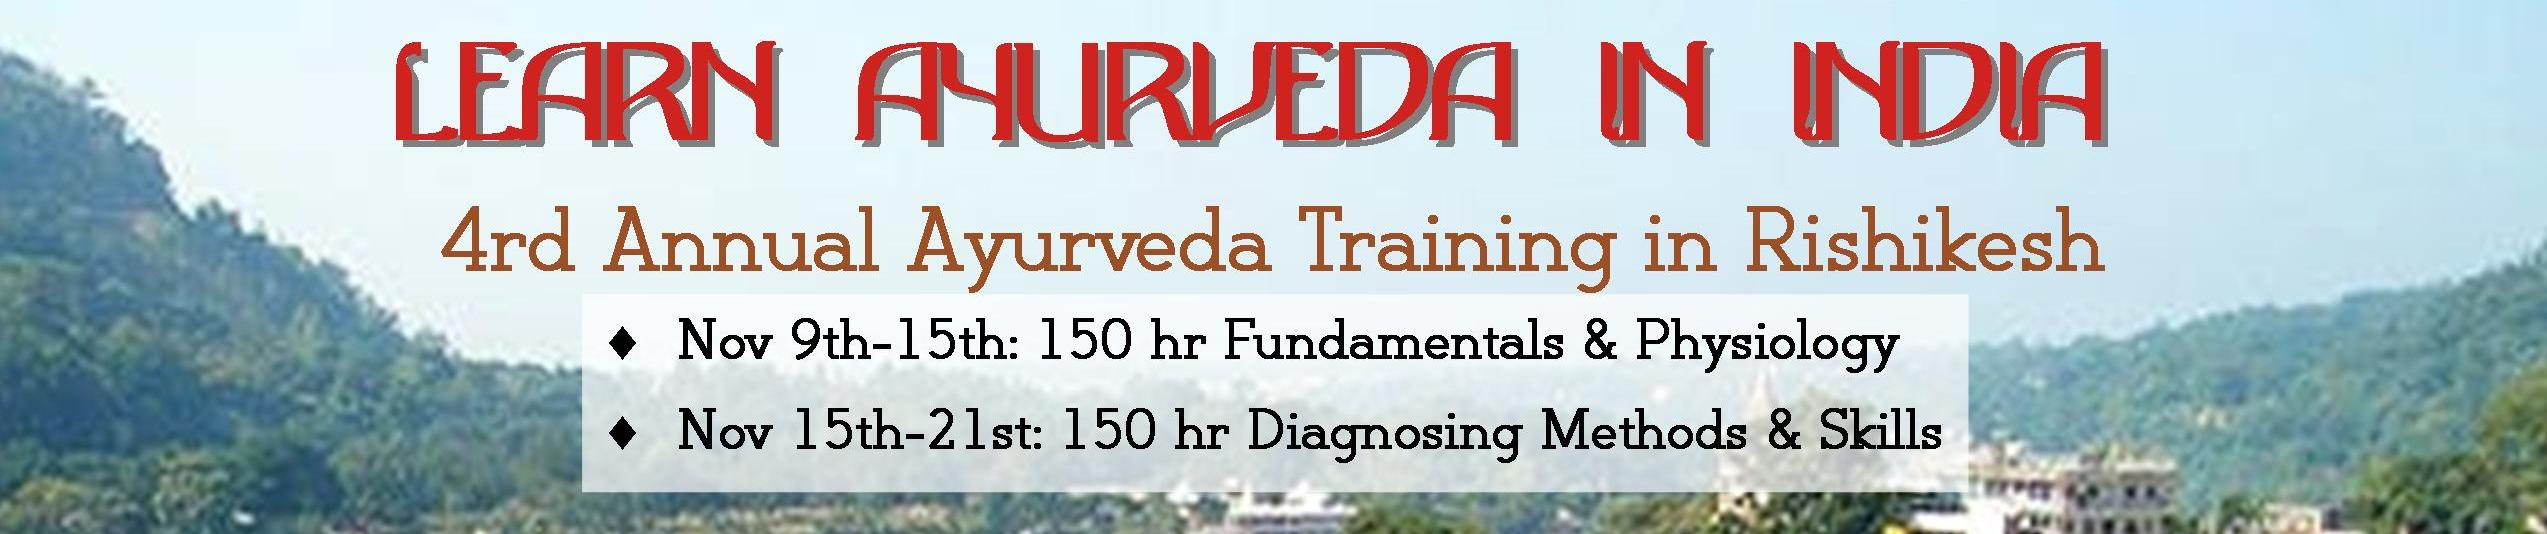 Learn the fundamentals of Ayurveda, diagnostic skills & methodes, food as medicine, India herbology & treatments. More info